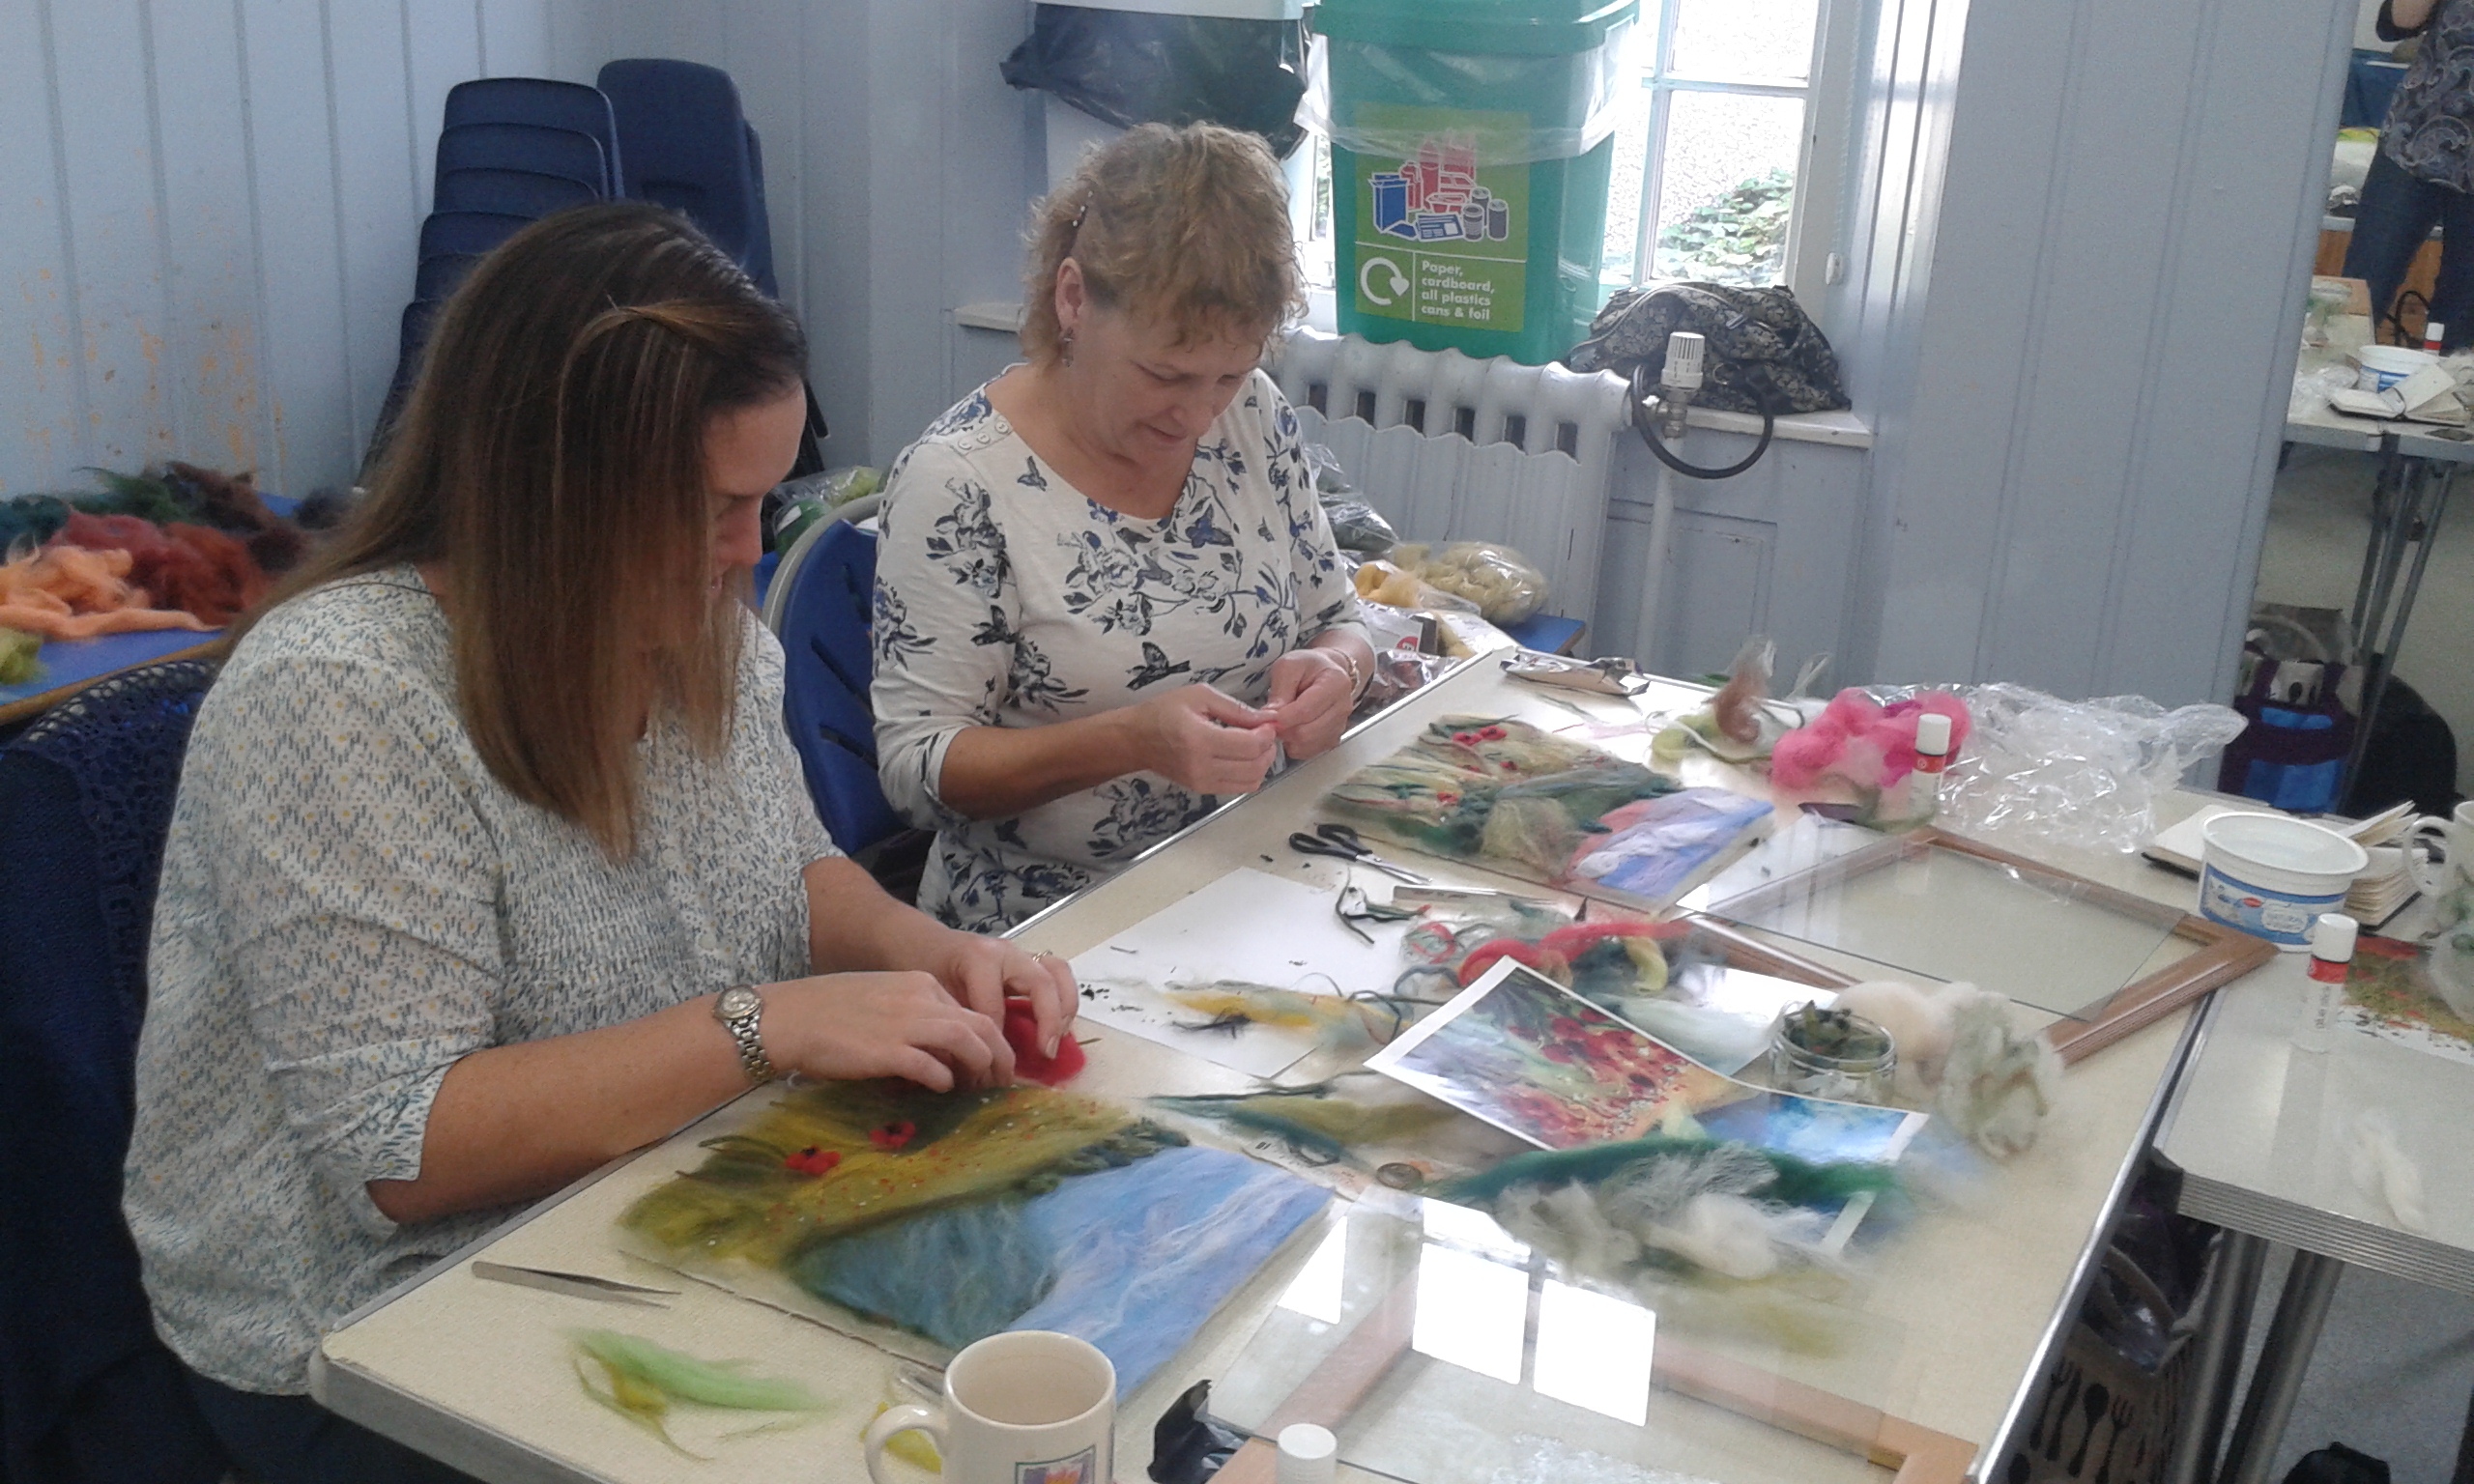 Friends Sally and Sally working on their wool painting landscapes.